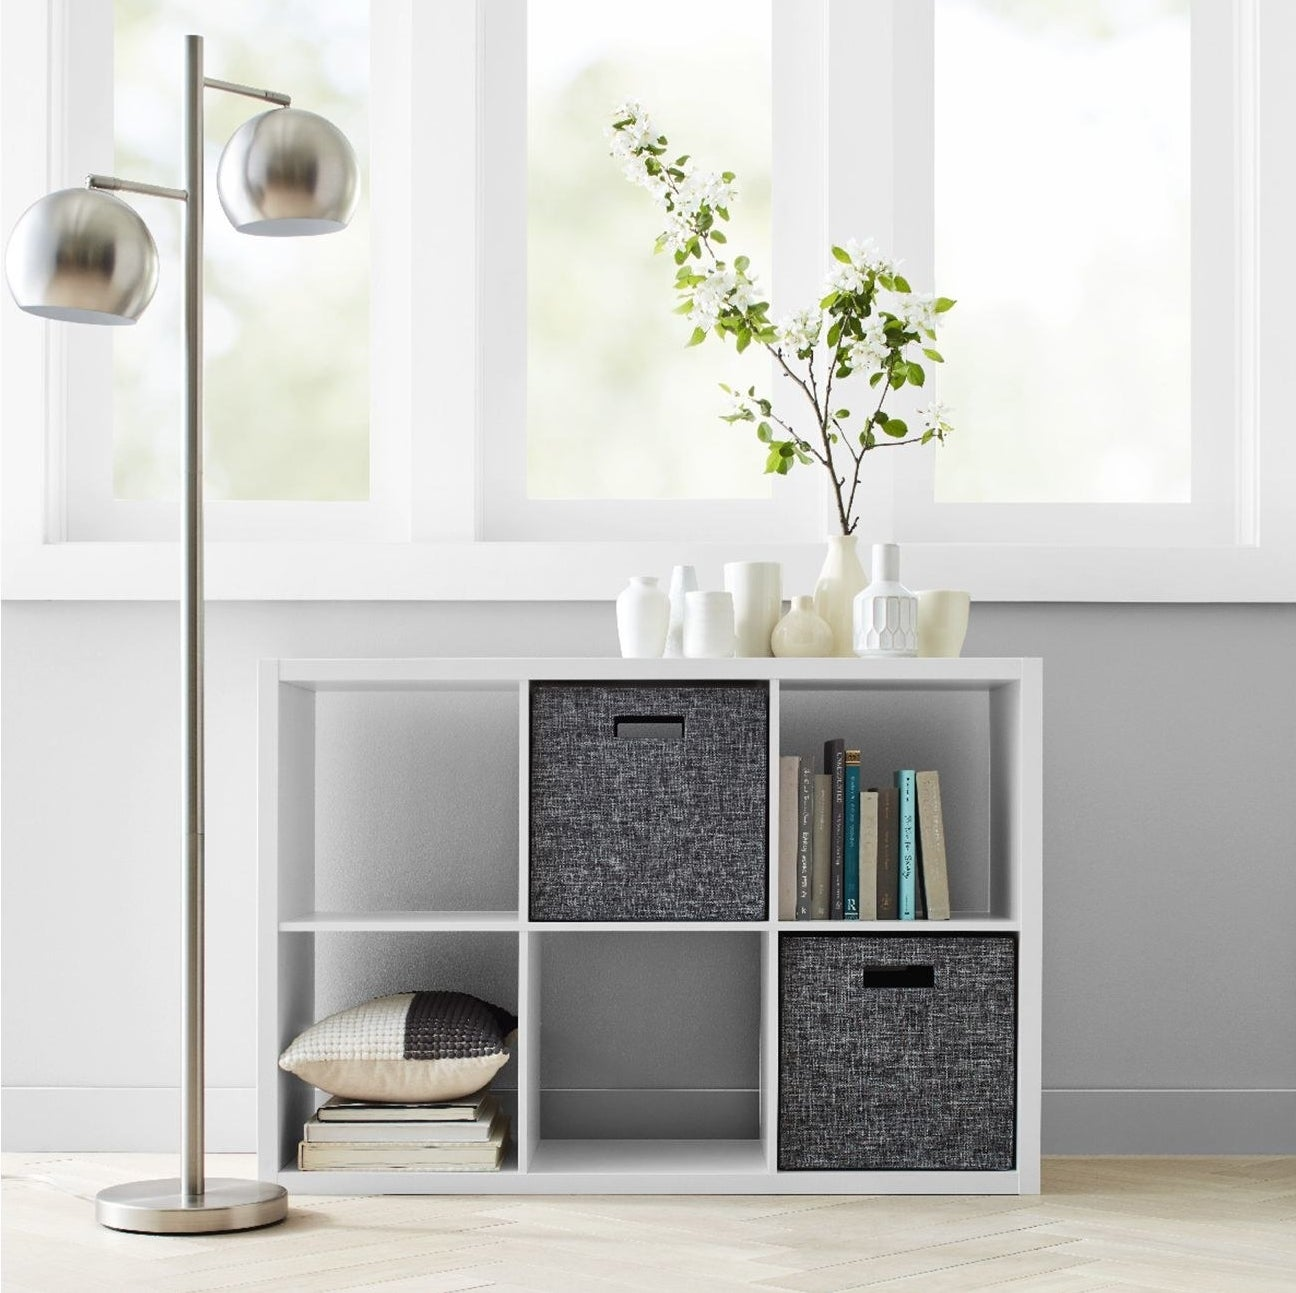 white six cube organizer shelf with books and grey cubes inside